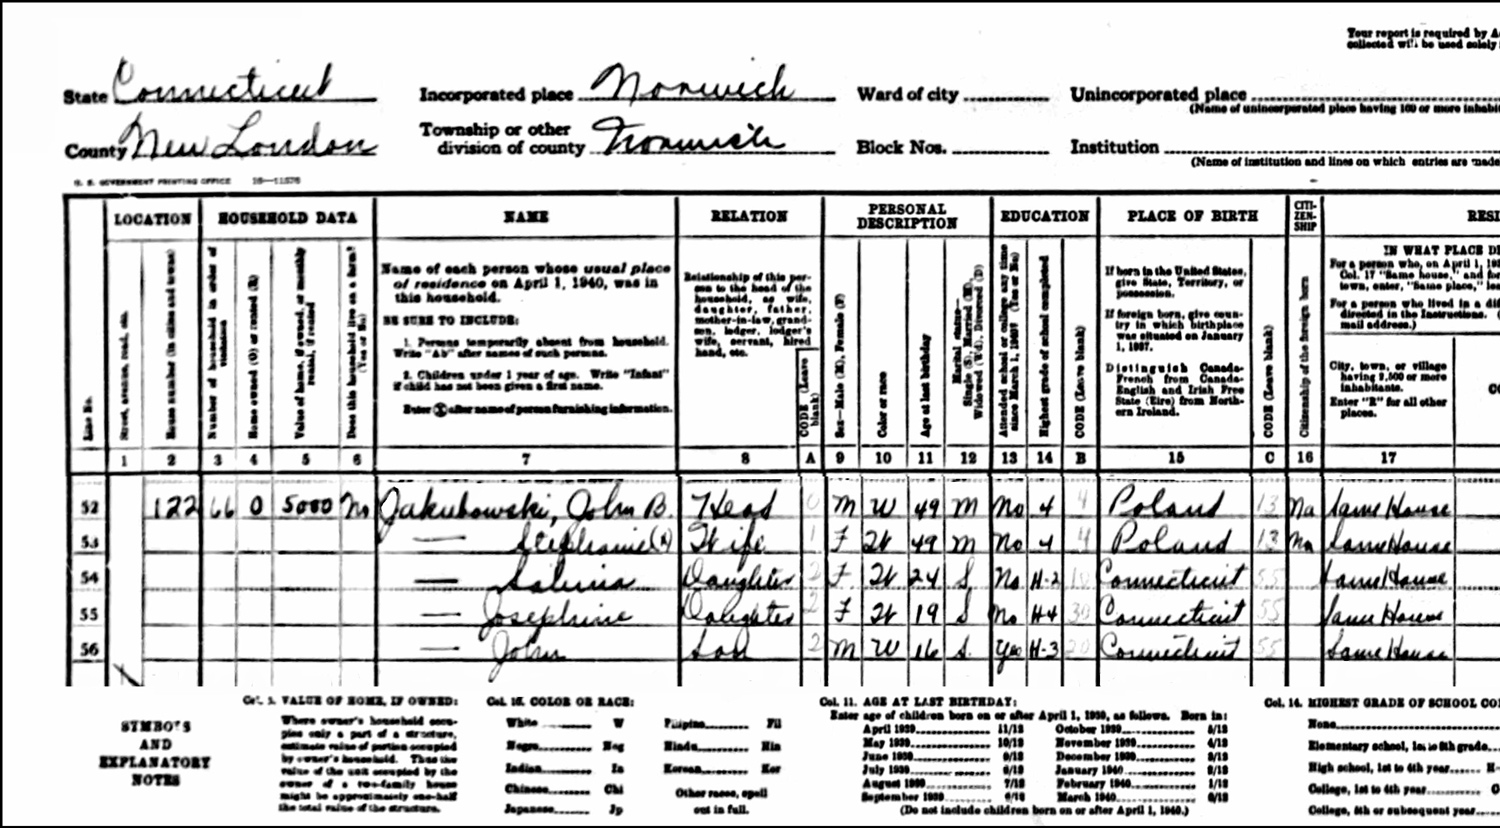 1940 US Federal Census Record for the Jan Jakubowski Household (Left)